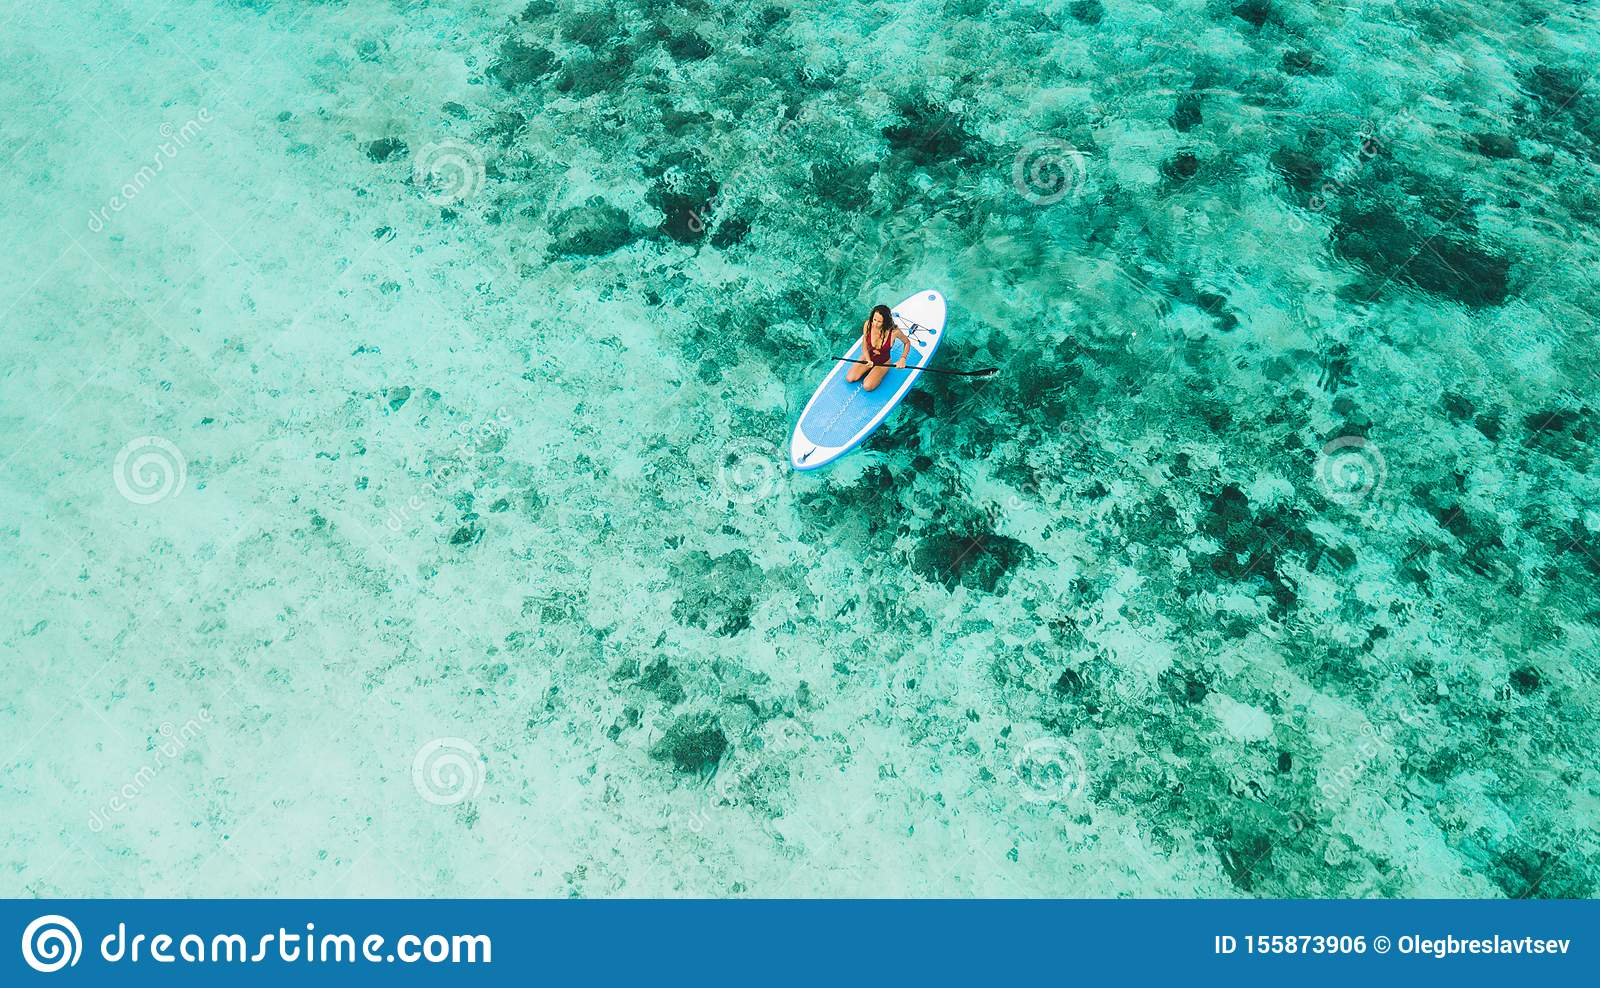 Woman sitting on sup board and enjoying coral reef